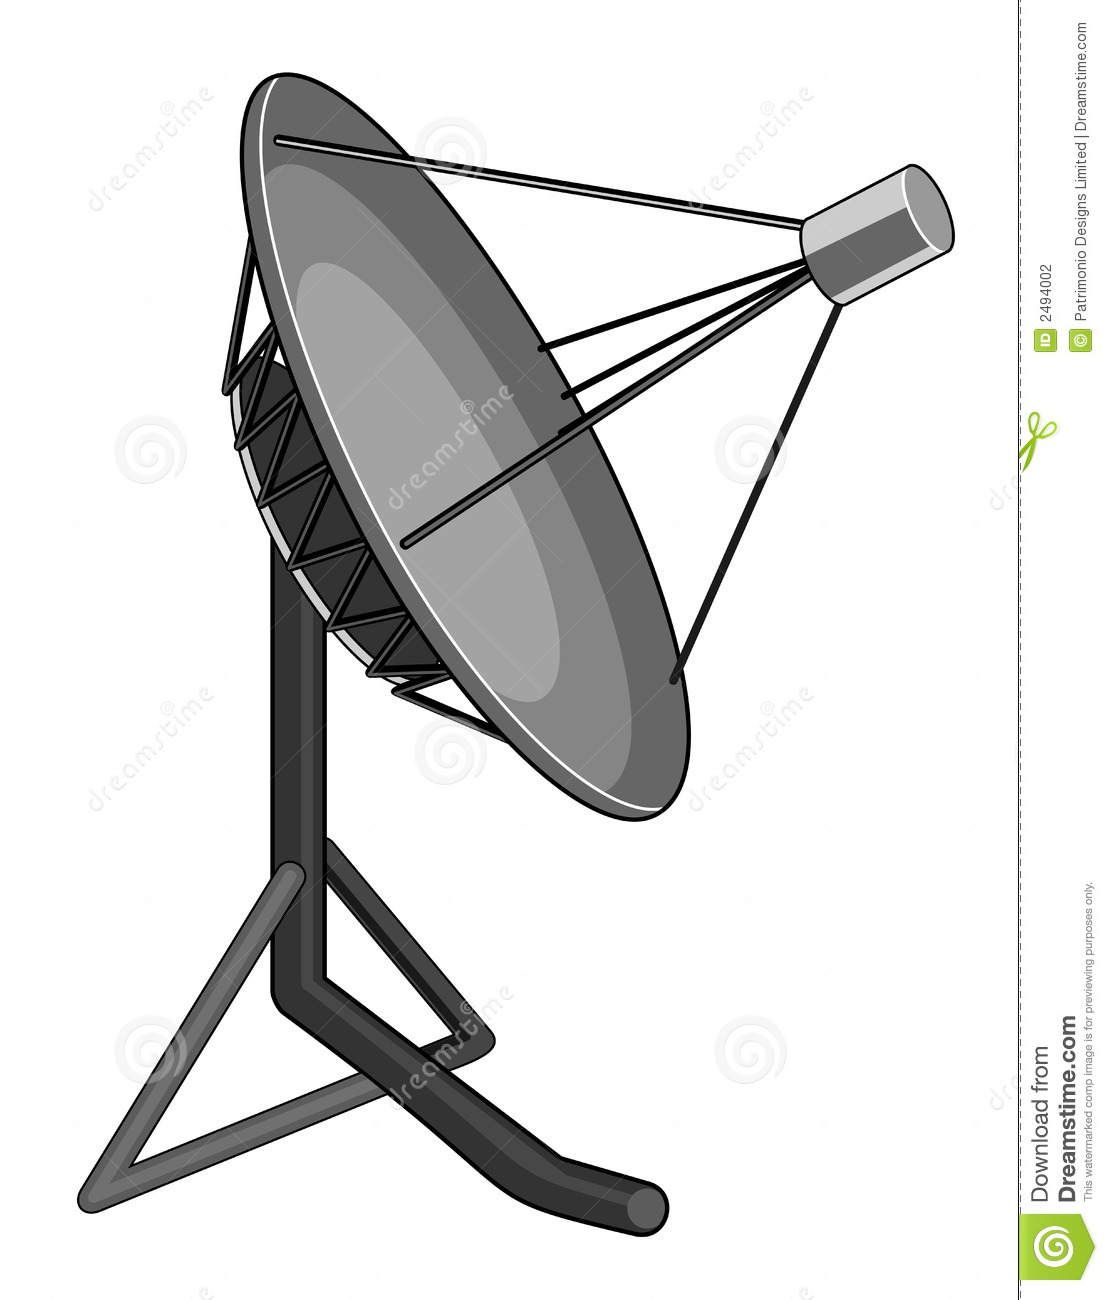 Antenne parabolique photographie stock image 2494002 - Orientation antenne tv ...